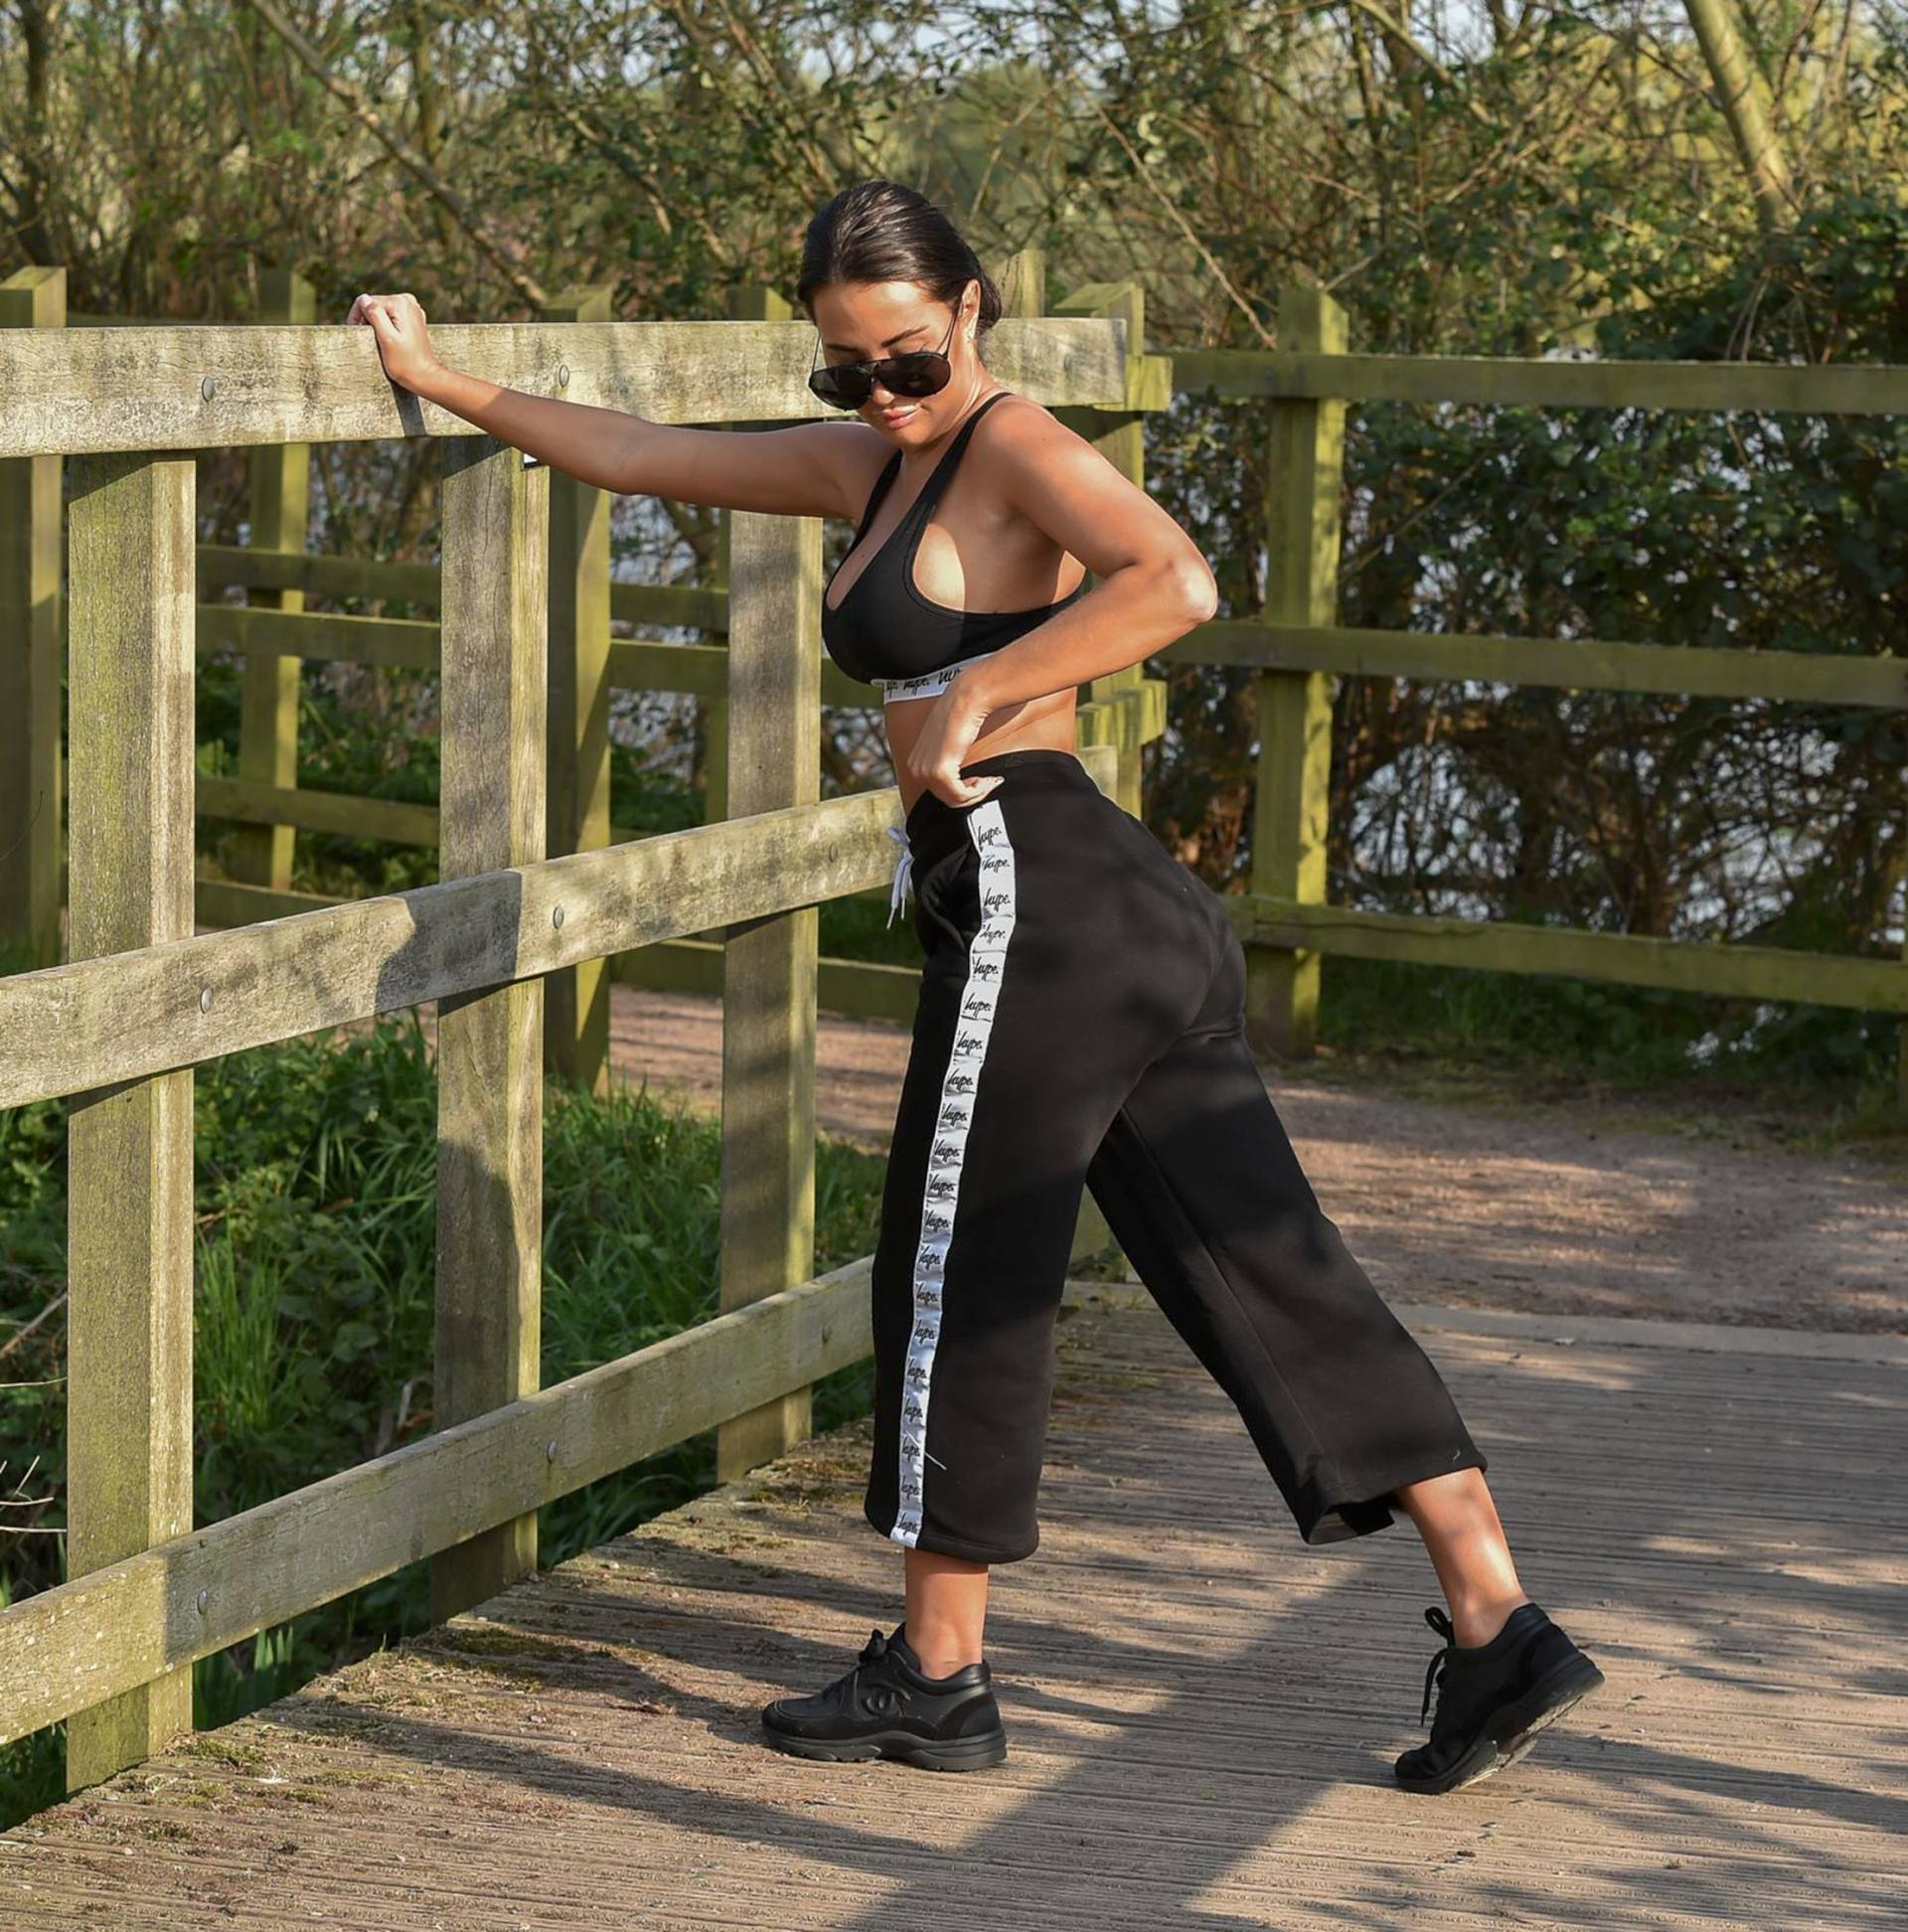 Yazmin Oukhellou Sexy Boobs In Sports Bra Out In A Park In Essex 0012